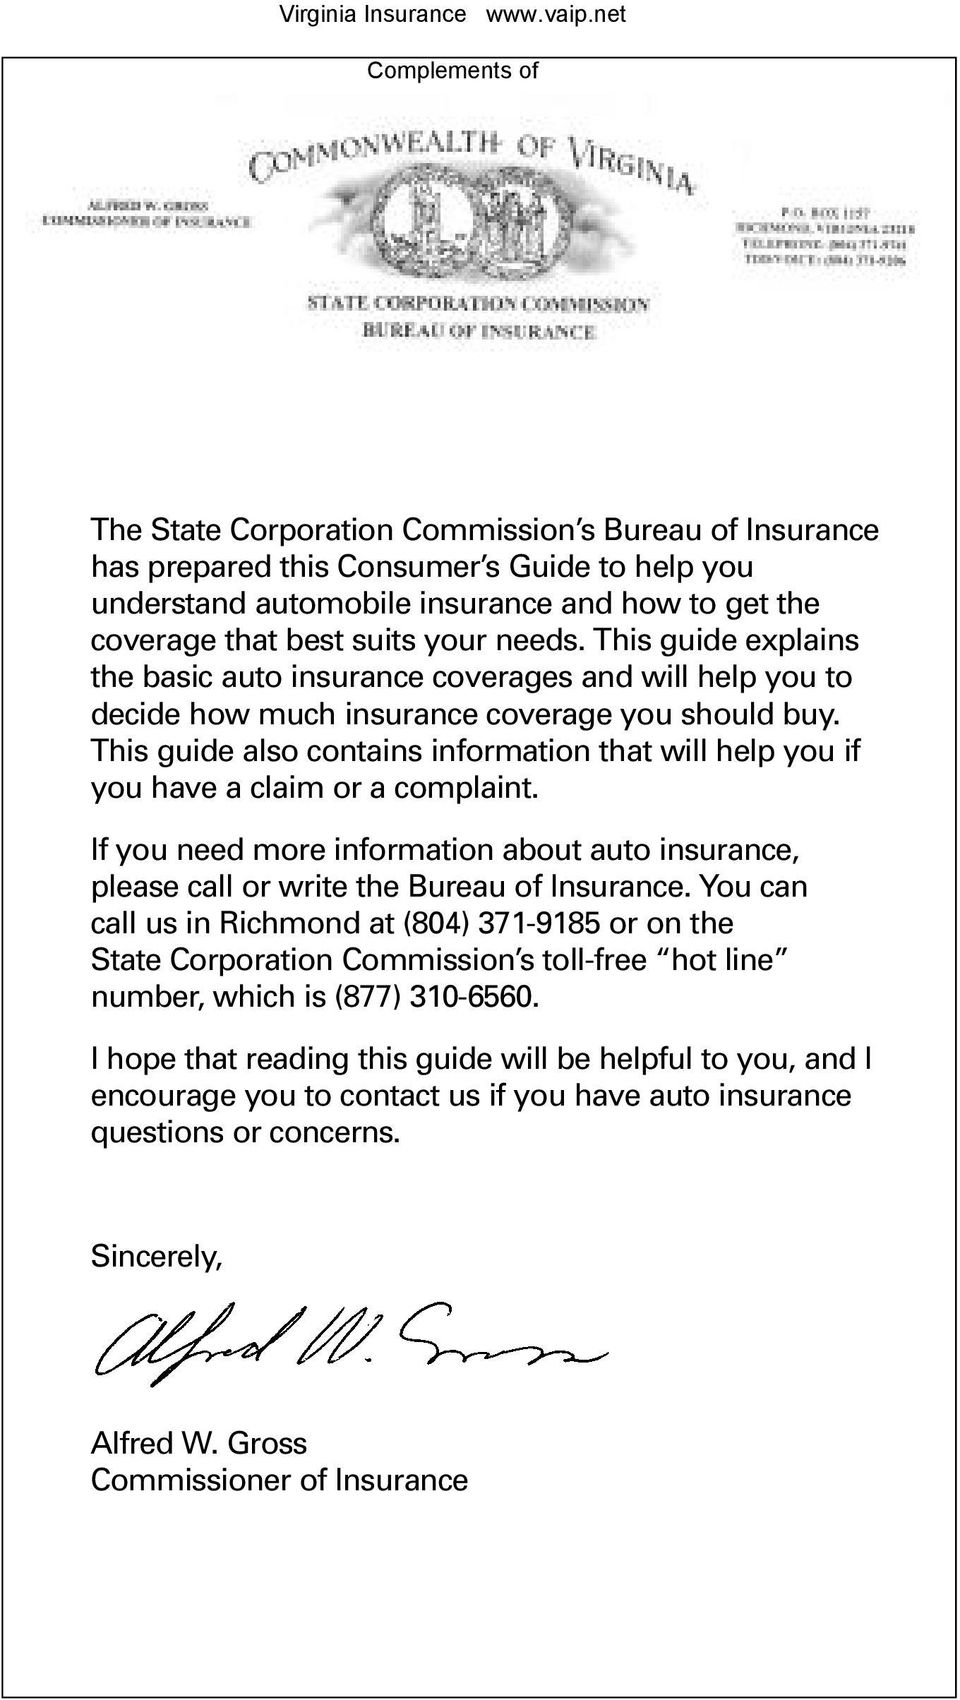 This guide also contains information that will help you if you have a claim or a complaint. If you need more information about auto insurance, please call or write the Bureau of Insurance.